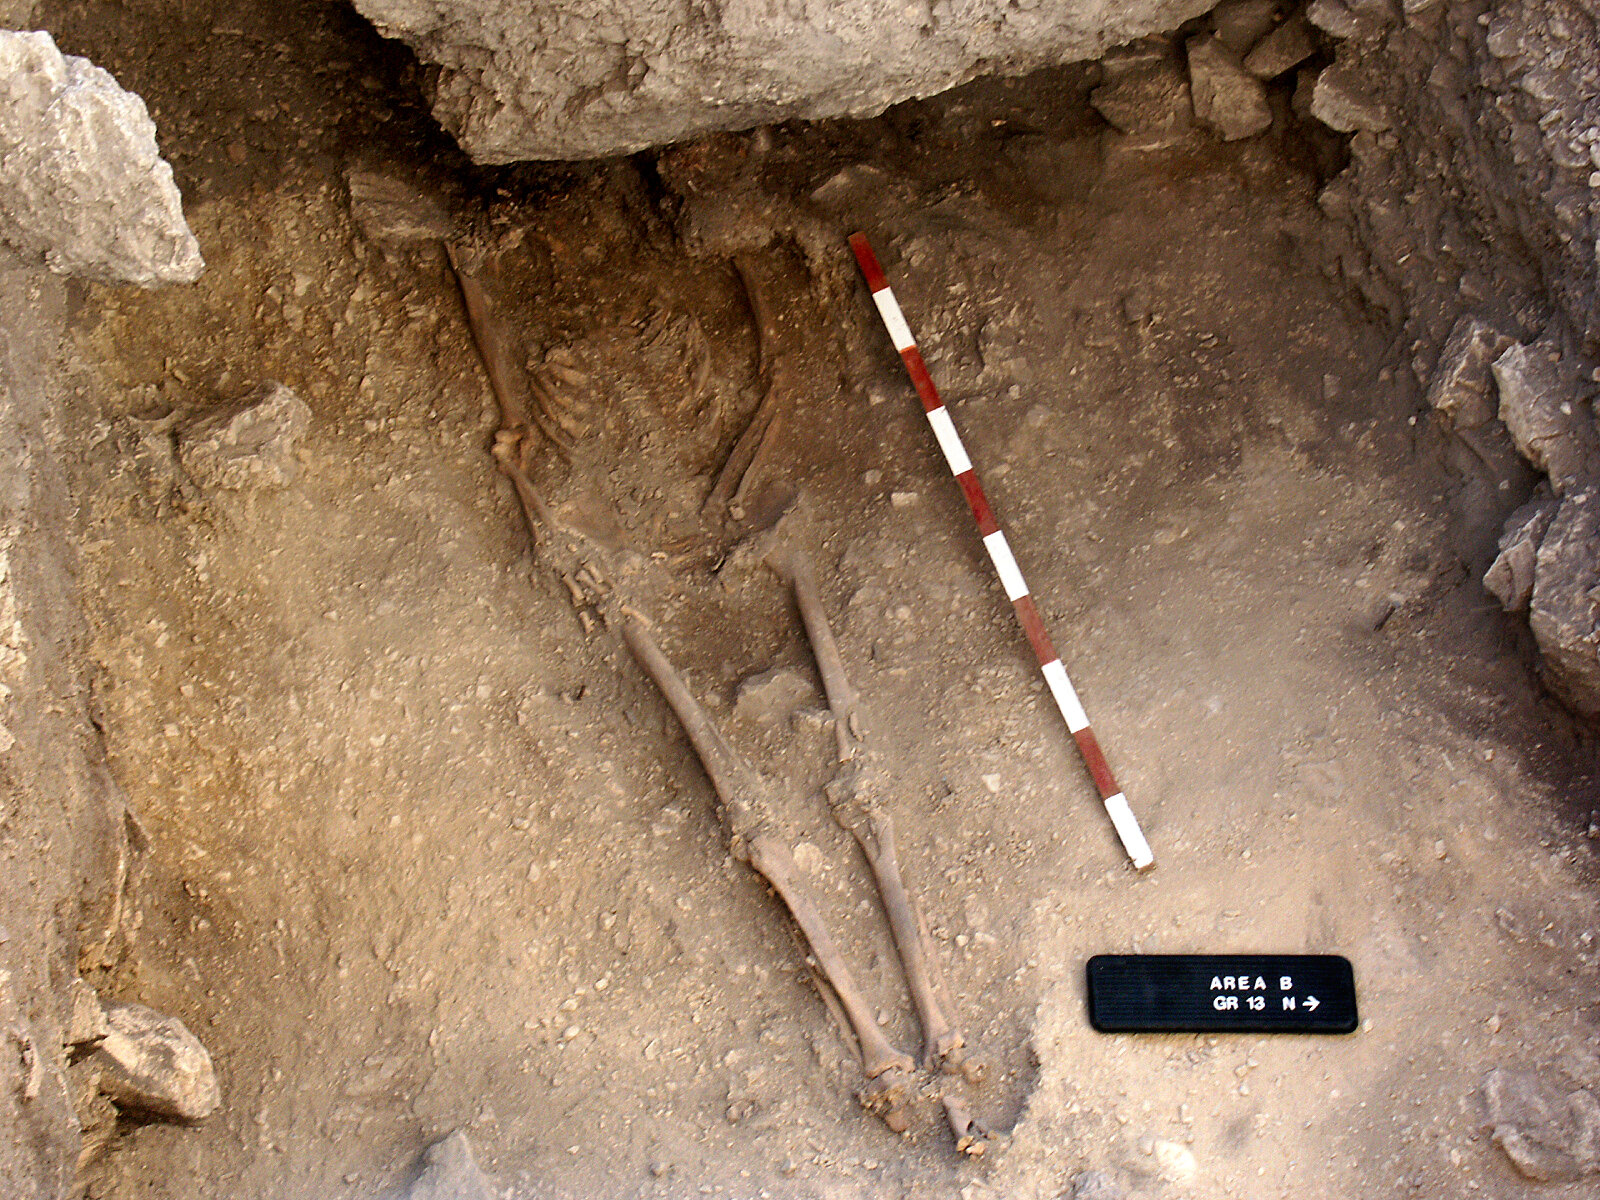 First Anatolian farmers were local hunter-gatherers that adopted agriculture